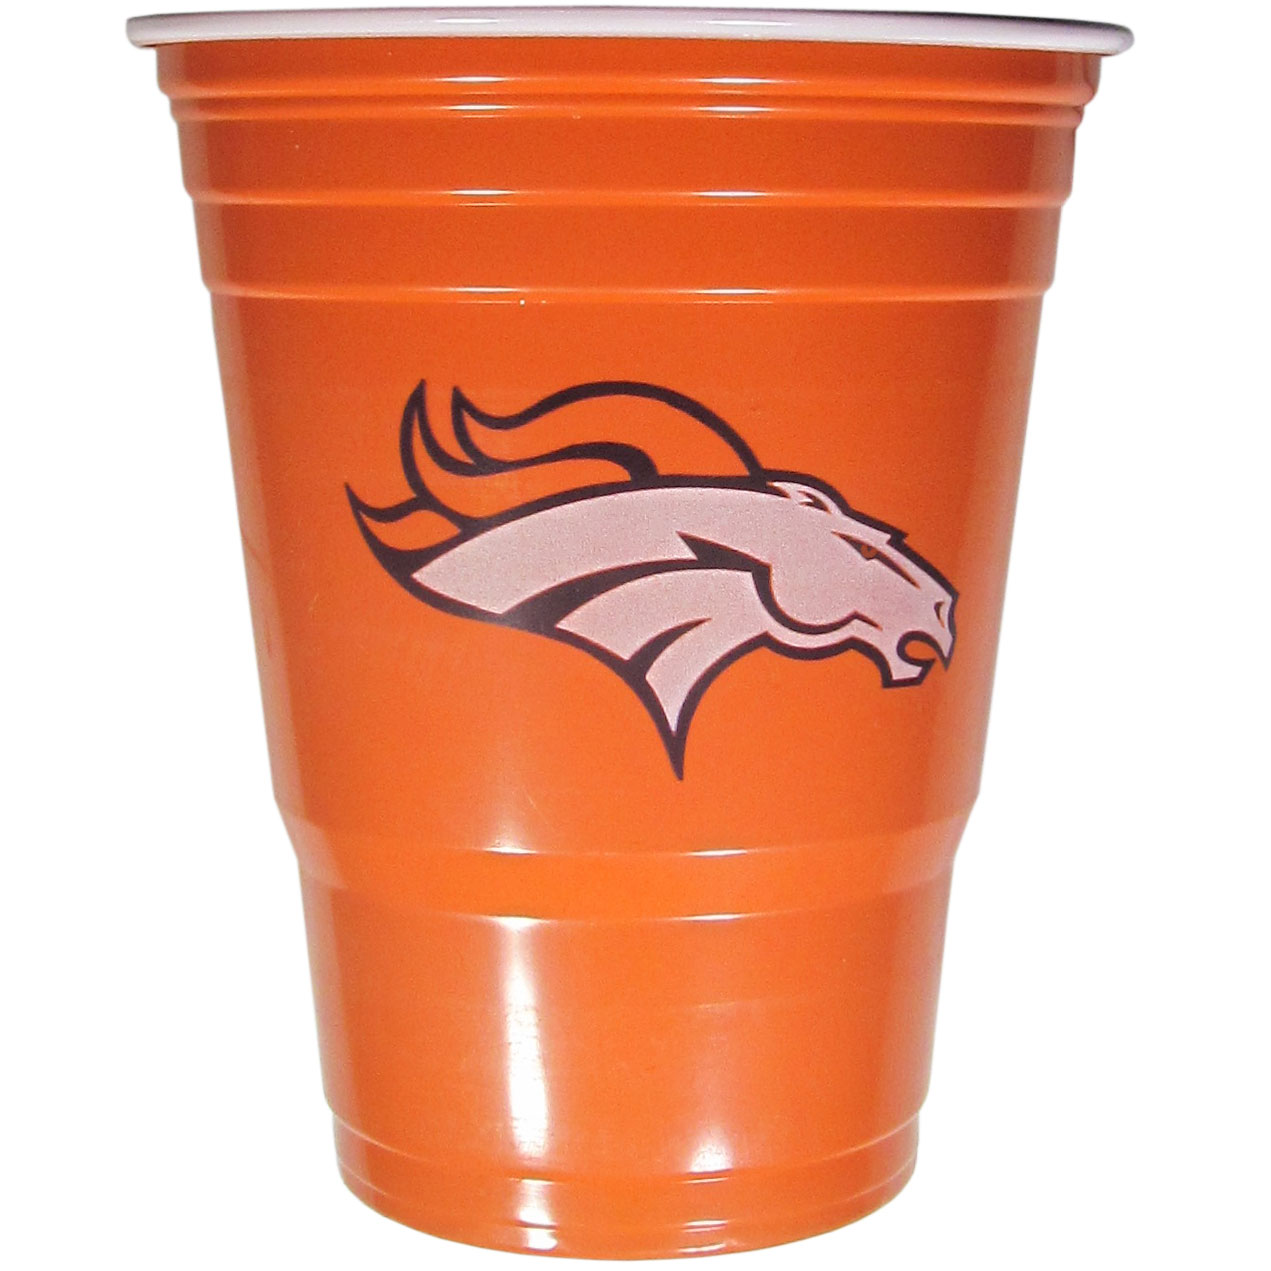 Denver Broncos Plastic Game Day Cups - Our 18 ounce game day cups are what every tailgating or backyard events needs! The cups feature a big Denver Broncos logo so you can show off your team pride. The popular 18 ounce size is perfect for drinks or ping pong balls! Sold in sleeves of 18 cups.